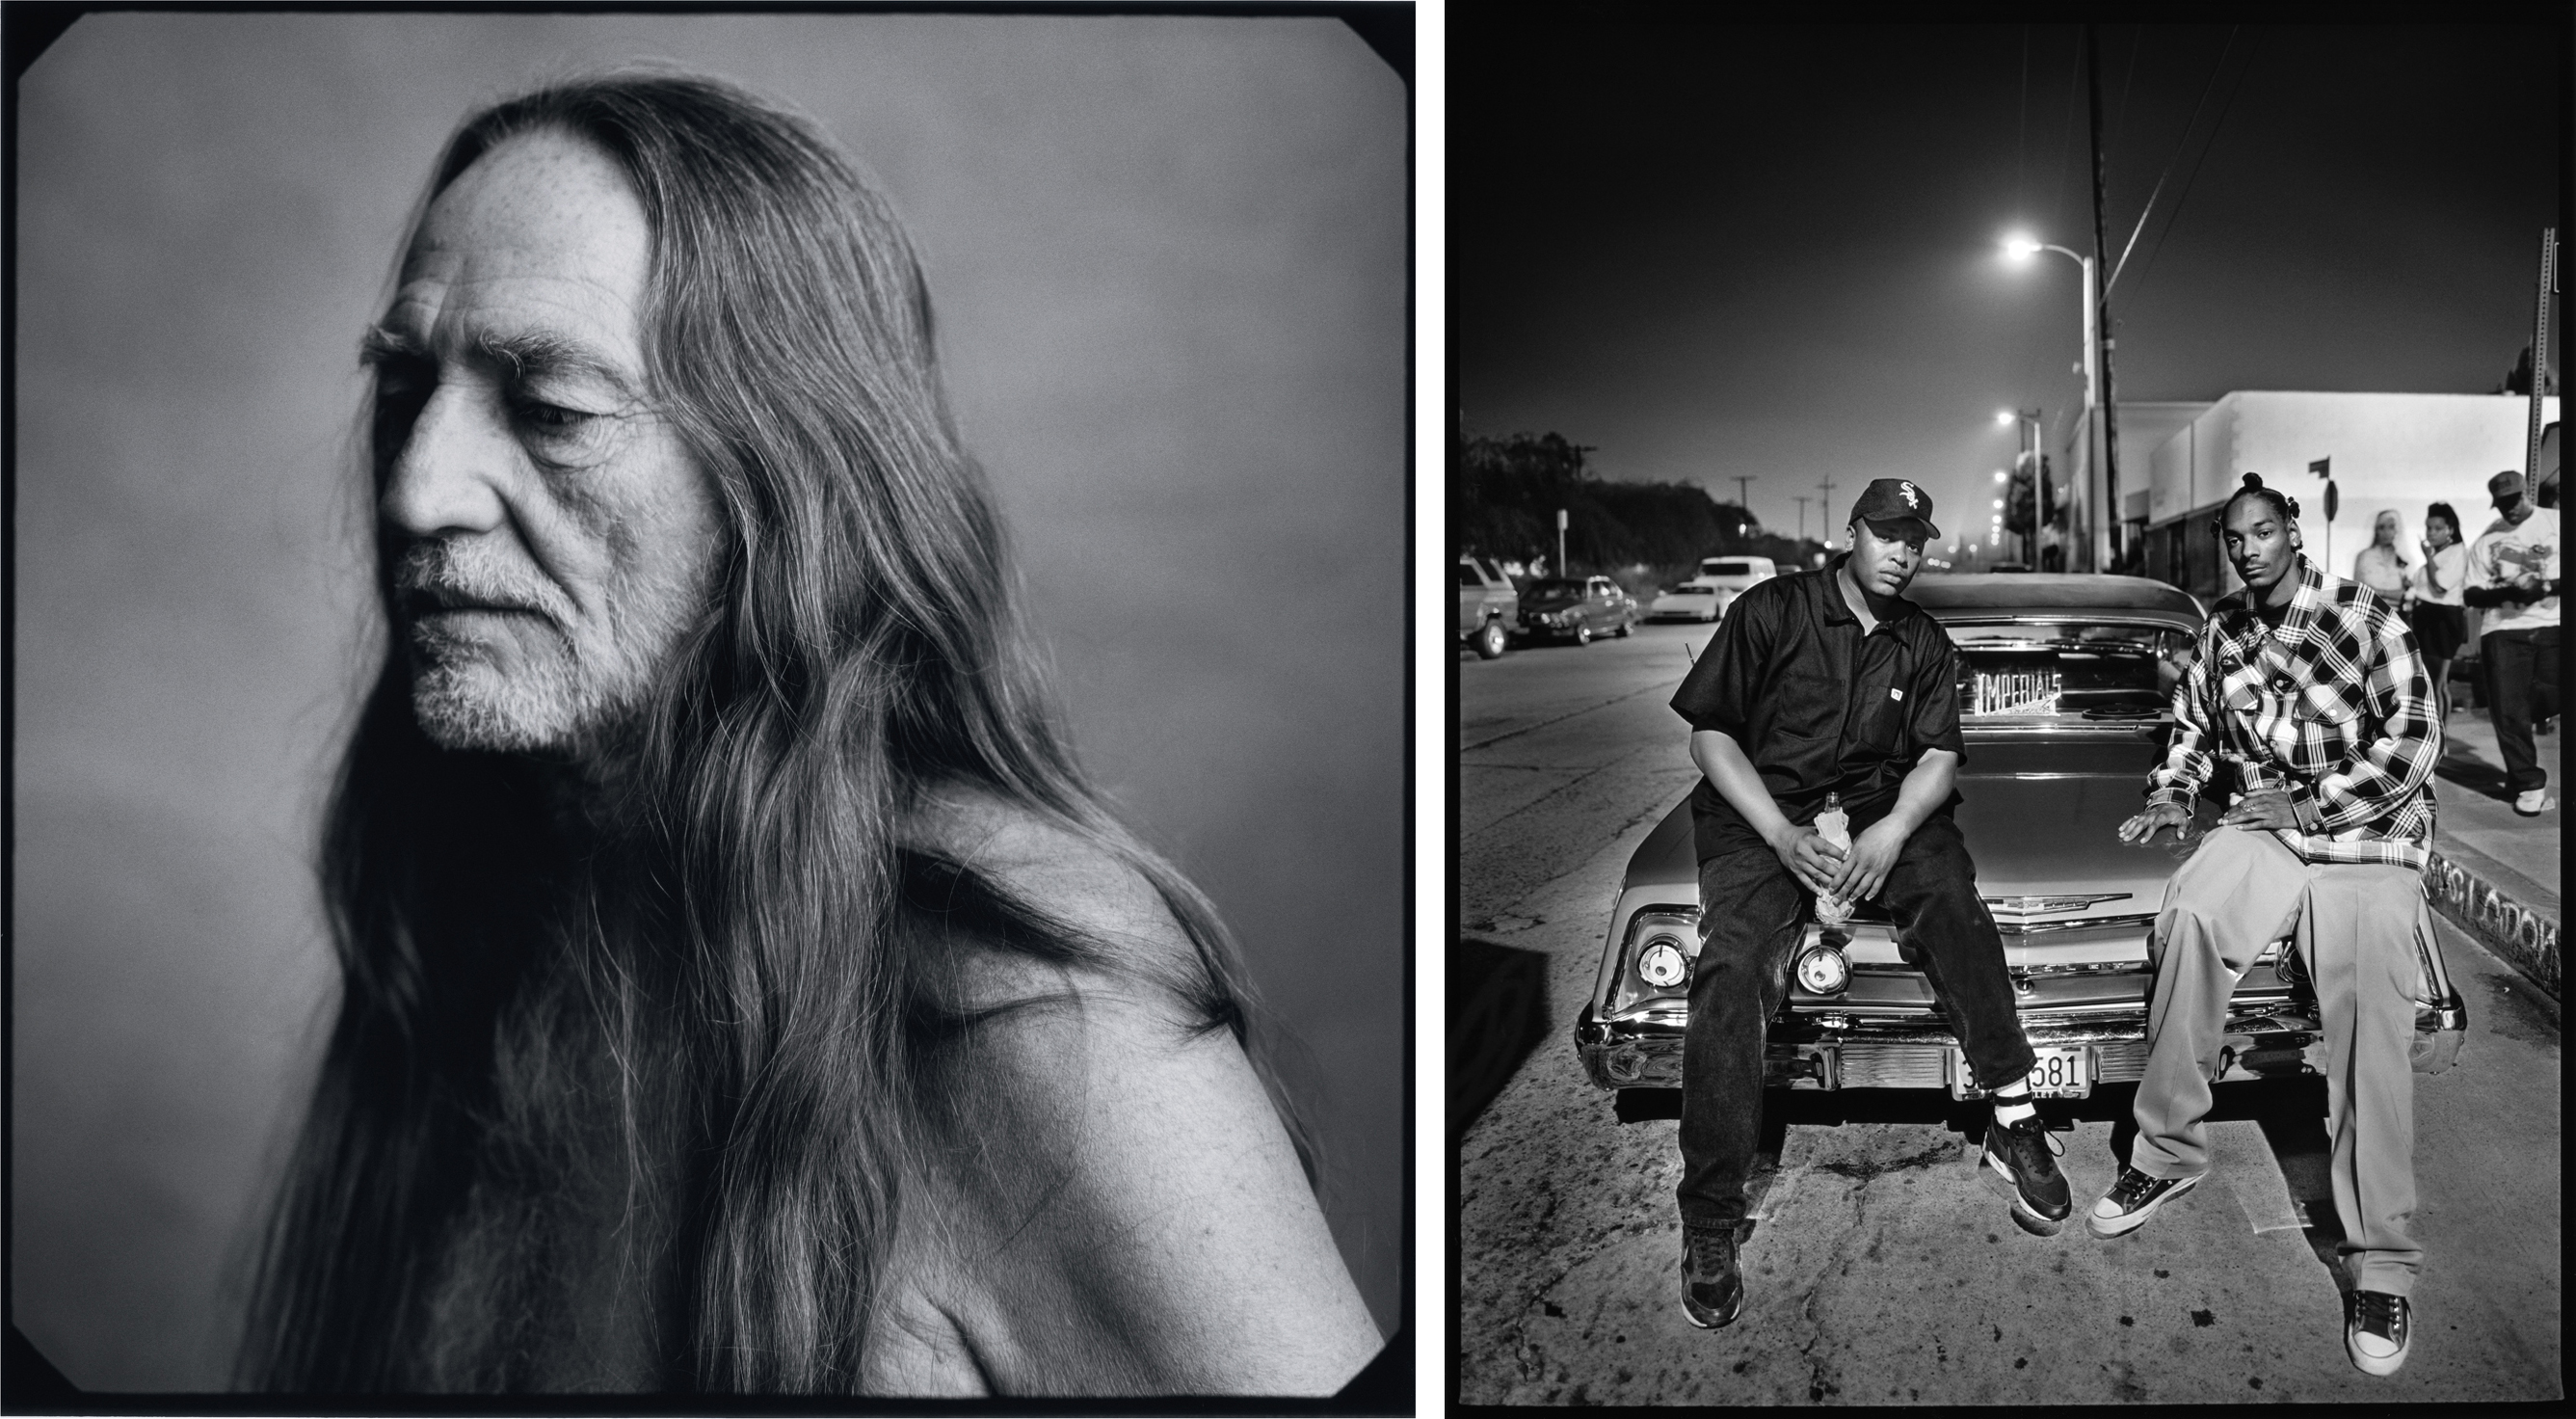 Left: Willie Nelson, New York, NY, 1996. Right: Dr. Dre and Snoop Dogg, Los Angeles, CA photograph by Mark Seliger